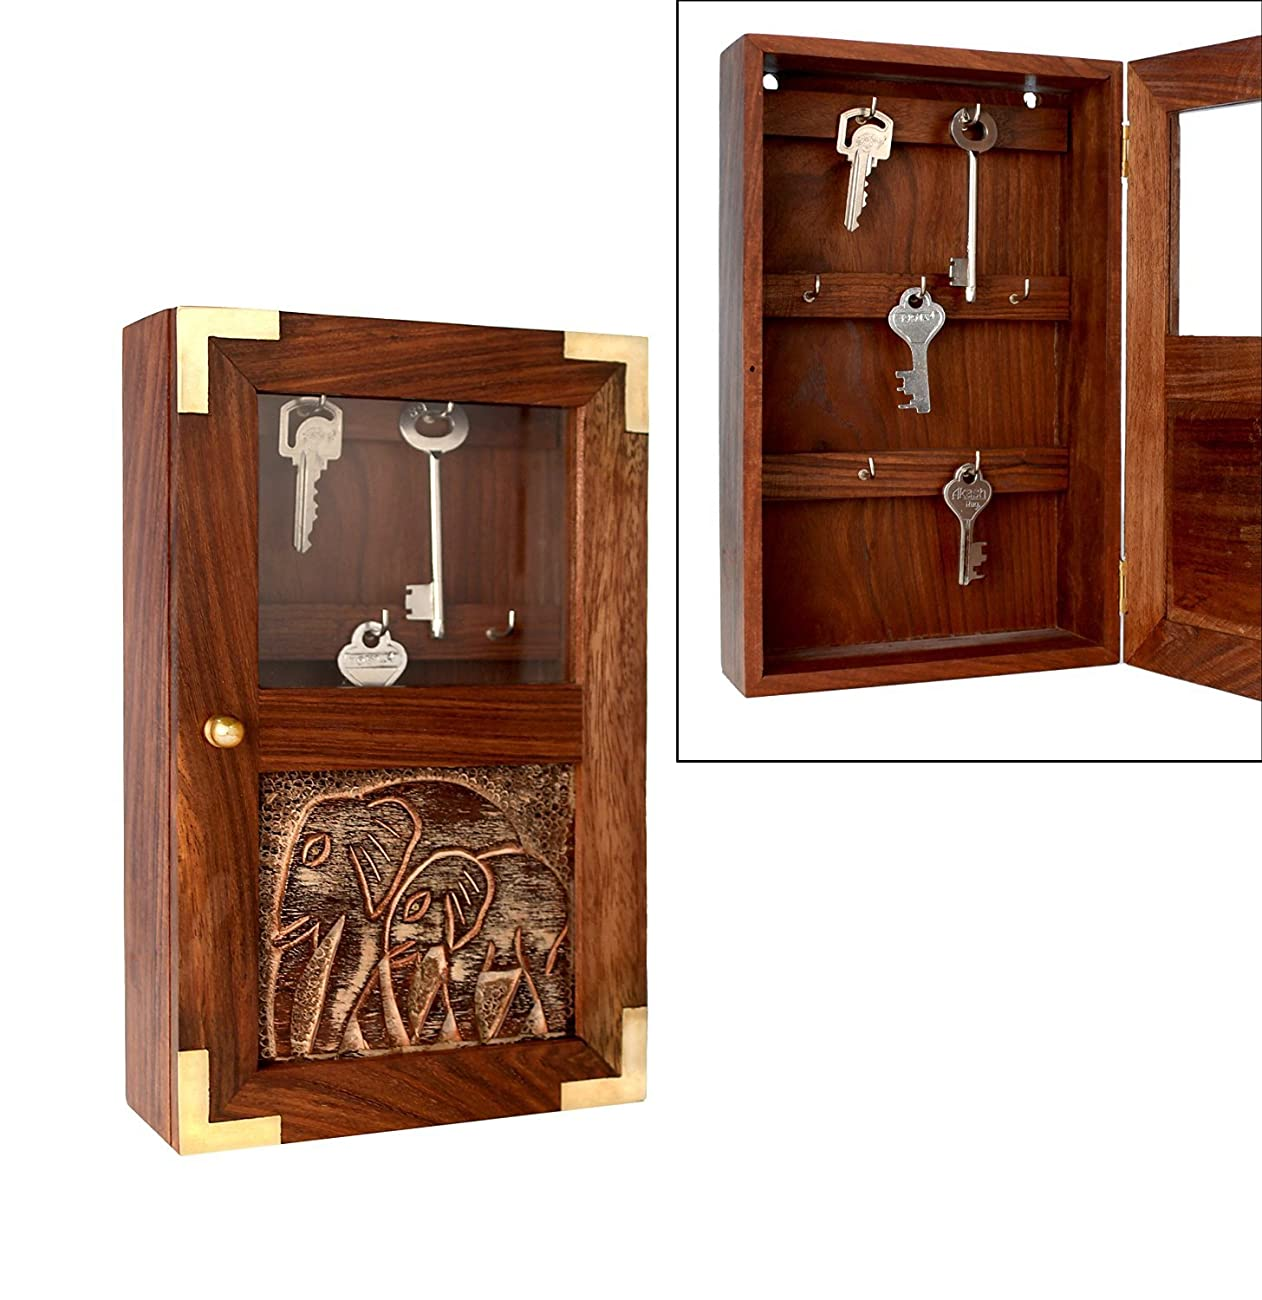 Handmade Decorative Wooden Wall Mounted Key Cabinet with Glass Panel Door & Elephant Carvings 1